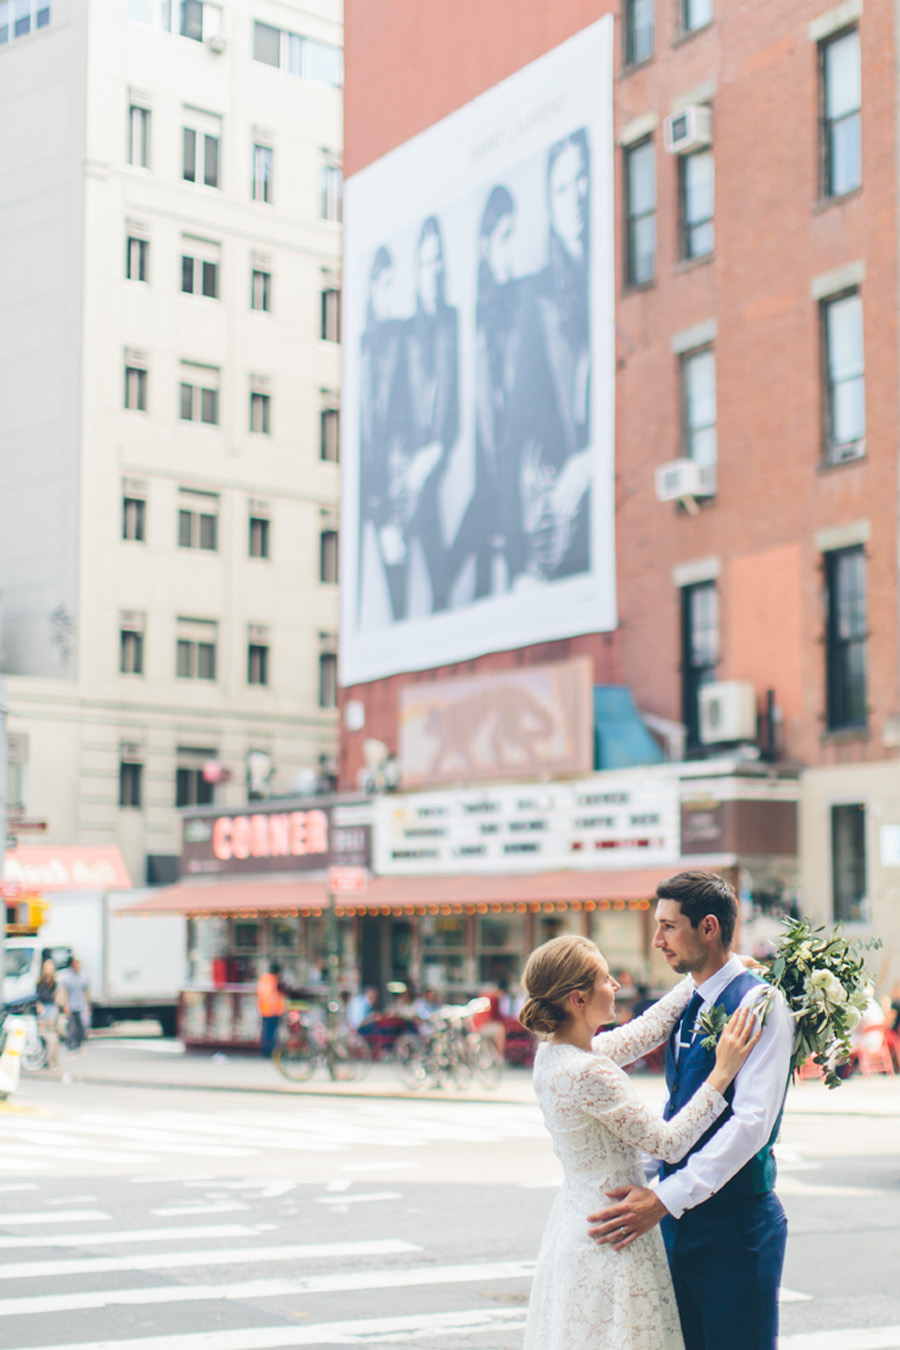 NYC-WEDDING-PHOTOGRAPHER-NY-CITYHALL-DESTINATION-ELOPEMENT-INTIMATE-WEDDING-CENTRAL-PARK-BROOKLYN-WEDDING-WILLIAMSBURG-SOHO-CHELSEA-THE-HIGH-LINE-037.jpg